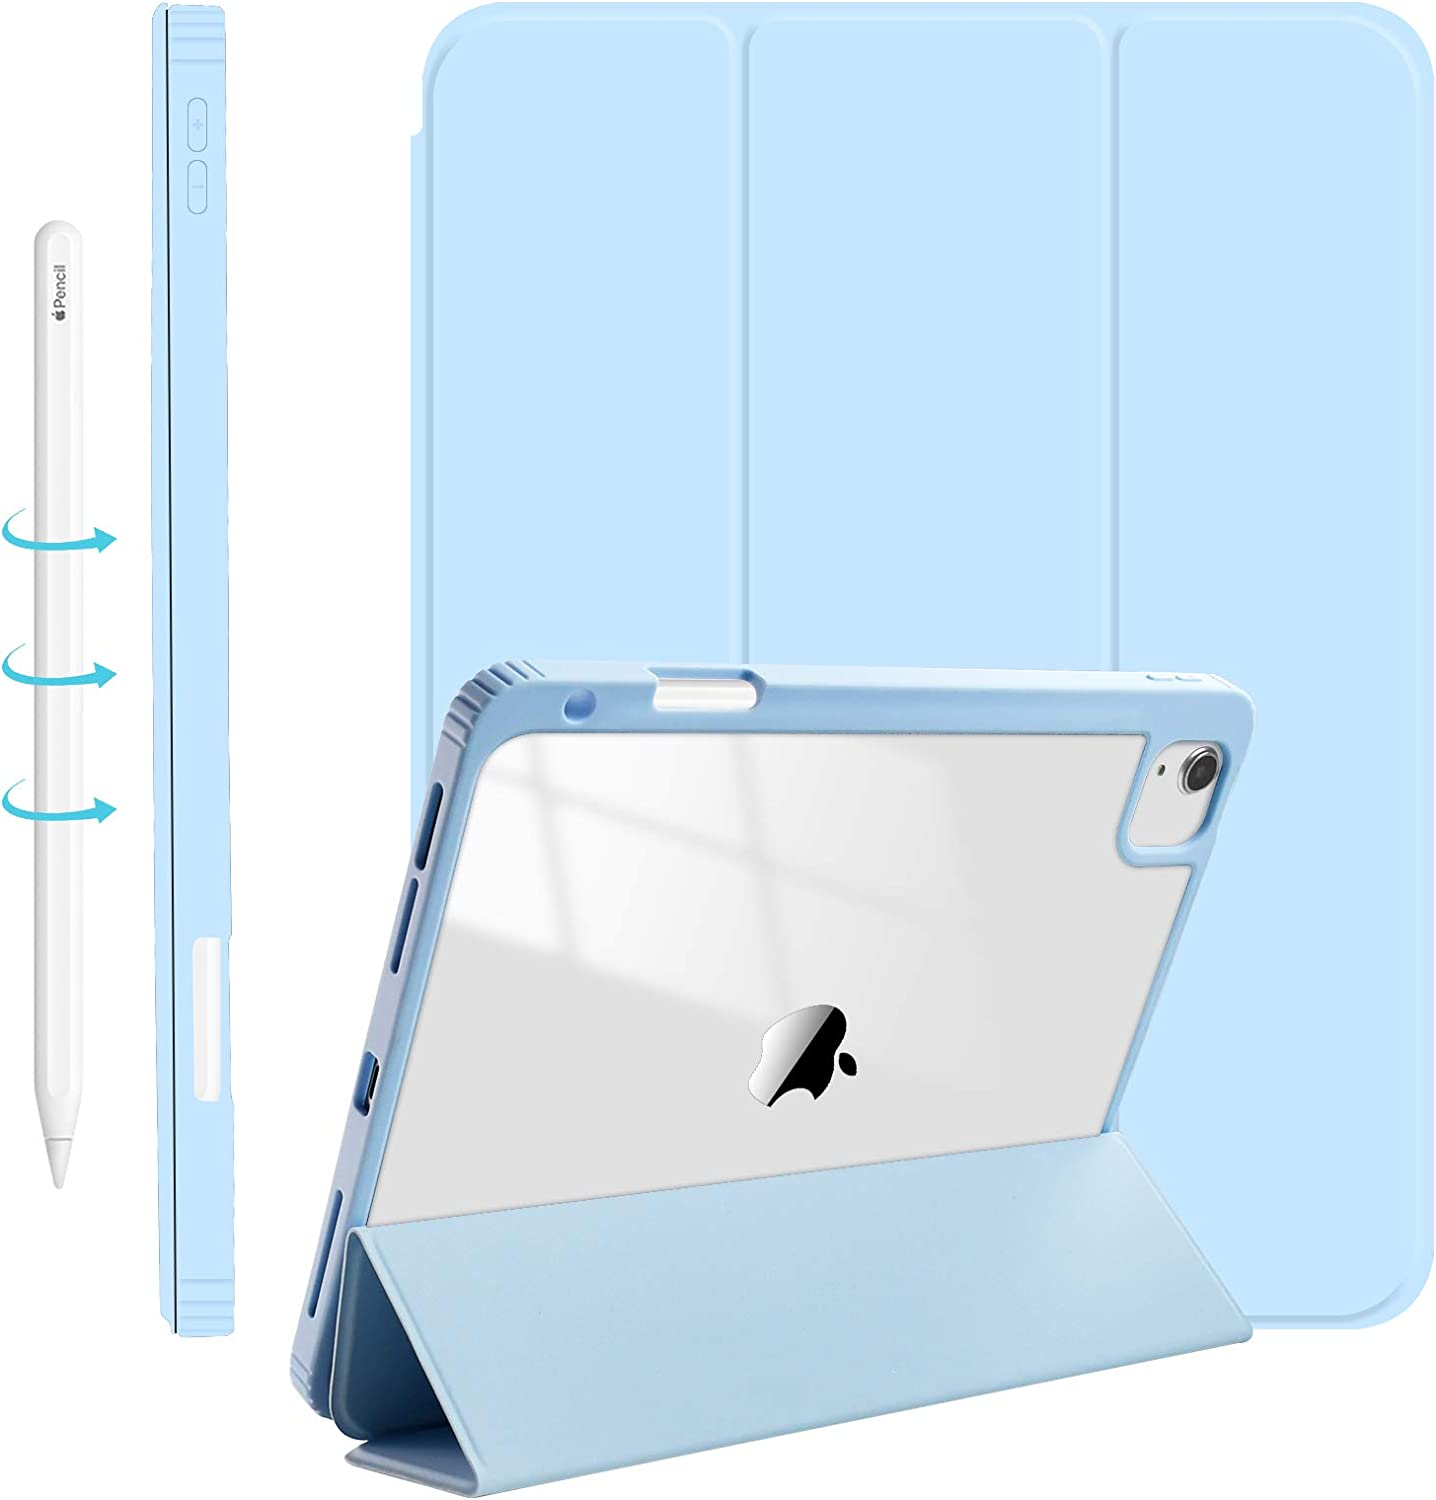 Sevrok Clear Case Compatible with iPad Air 4th Generation, iPad Pro 11 (2021 Version) with Pencil Holder [Support Touch ID and Apple 2nd Gen Pencil Charging / Pair] Trifold Stand Smart - Sky Blue